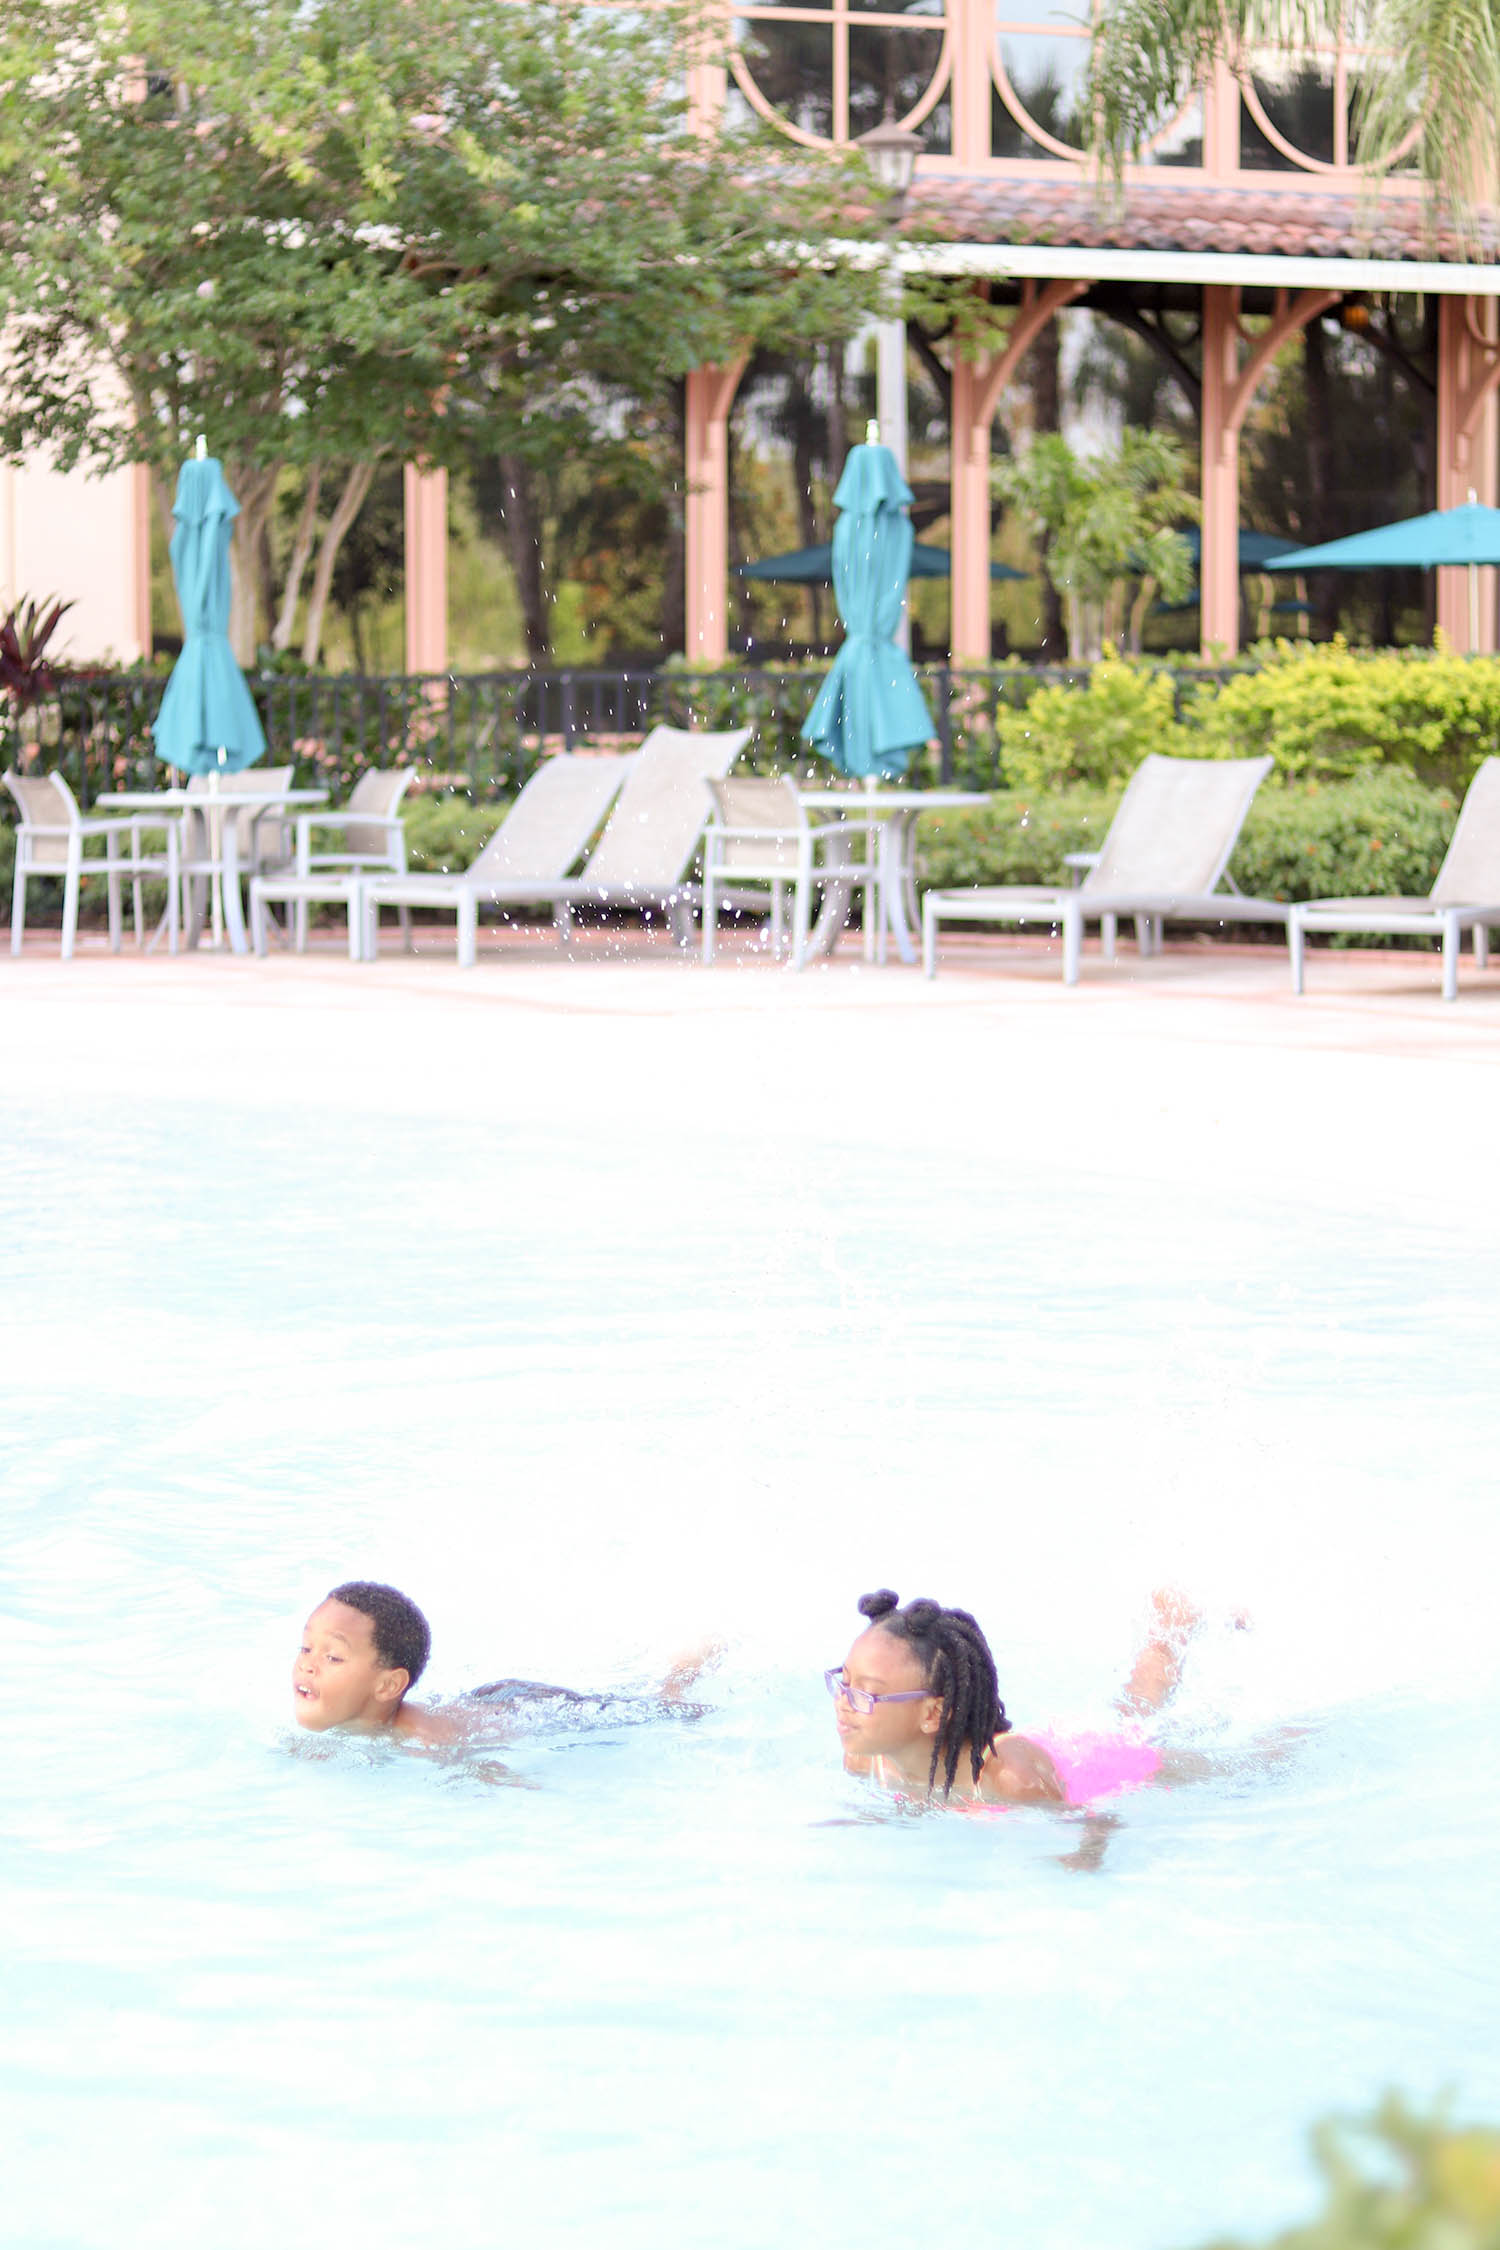 Rosen Shingle Creek American Girl Staycation - Bianca Dottin